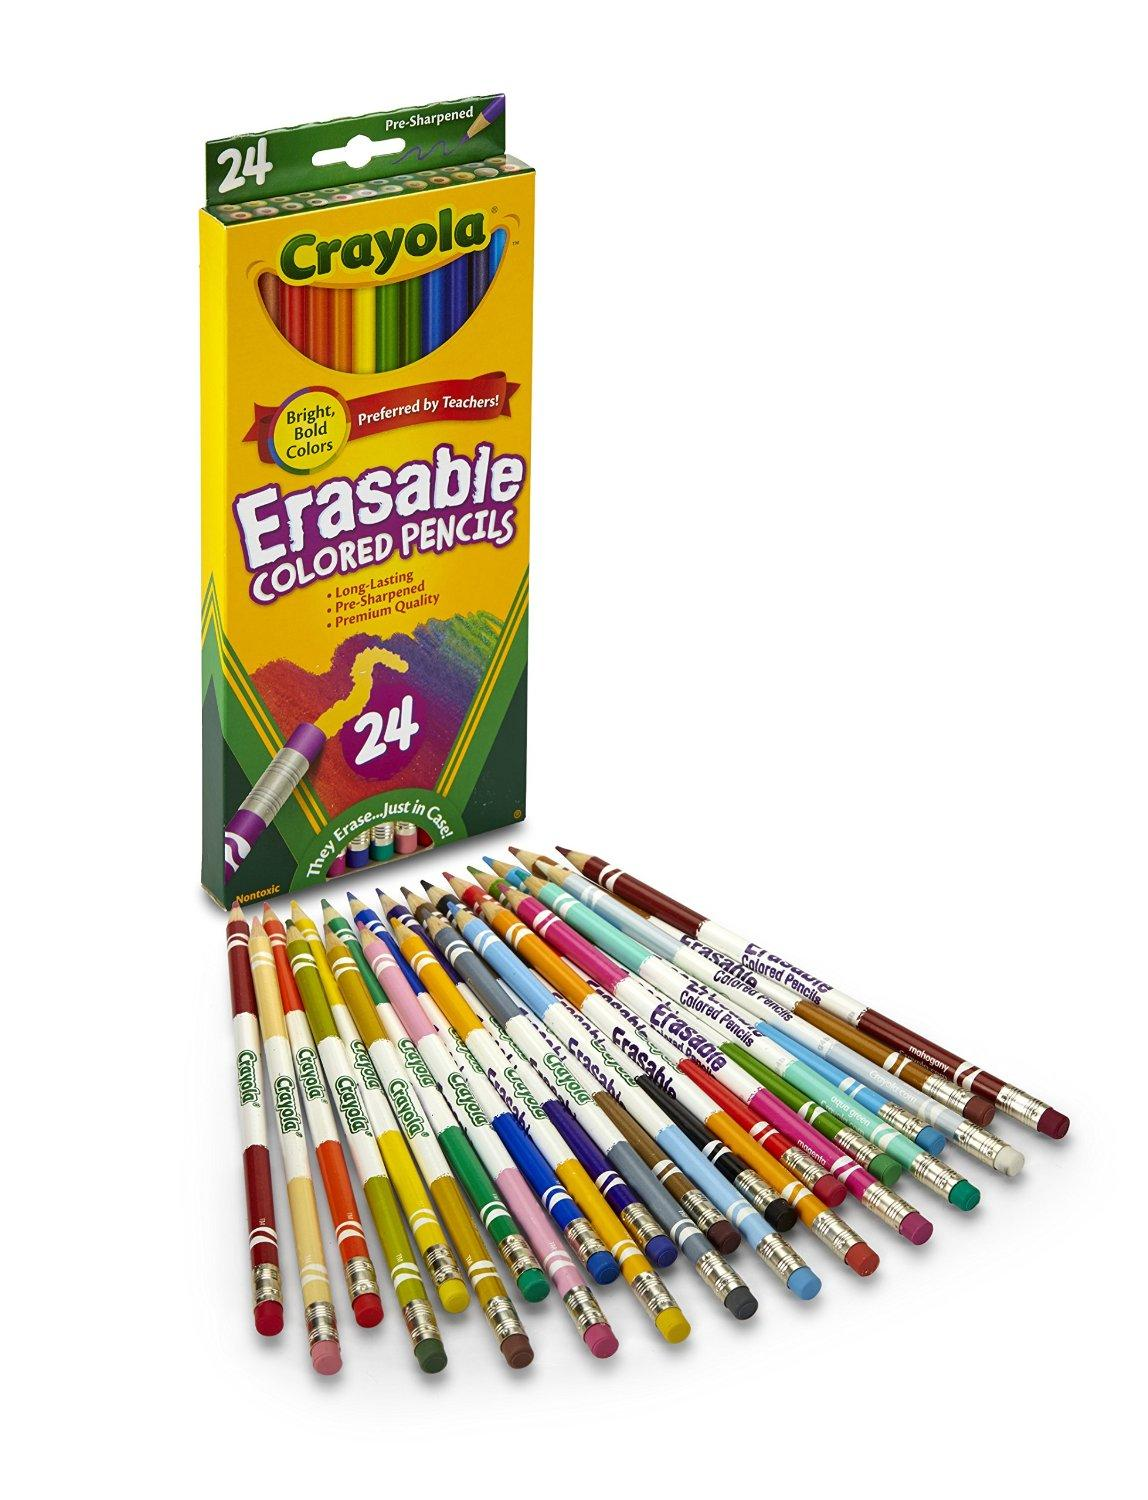 Crayola 24ct Erasable Colored Pencils